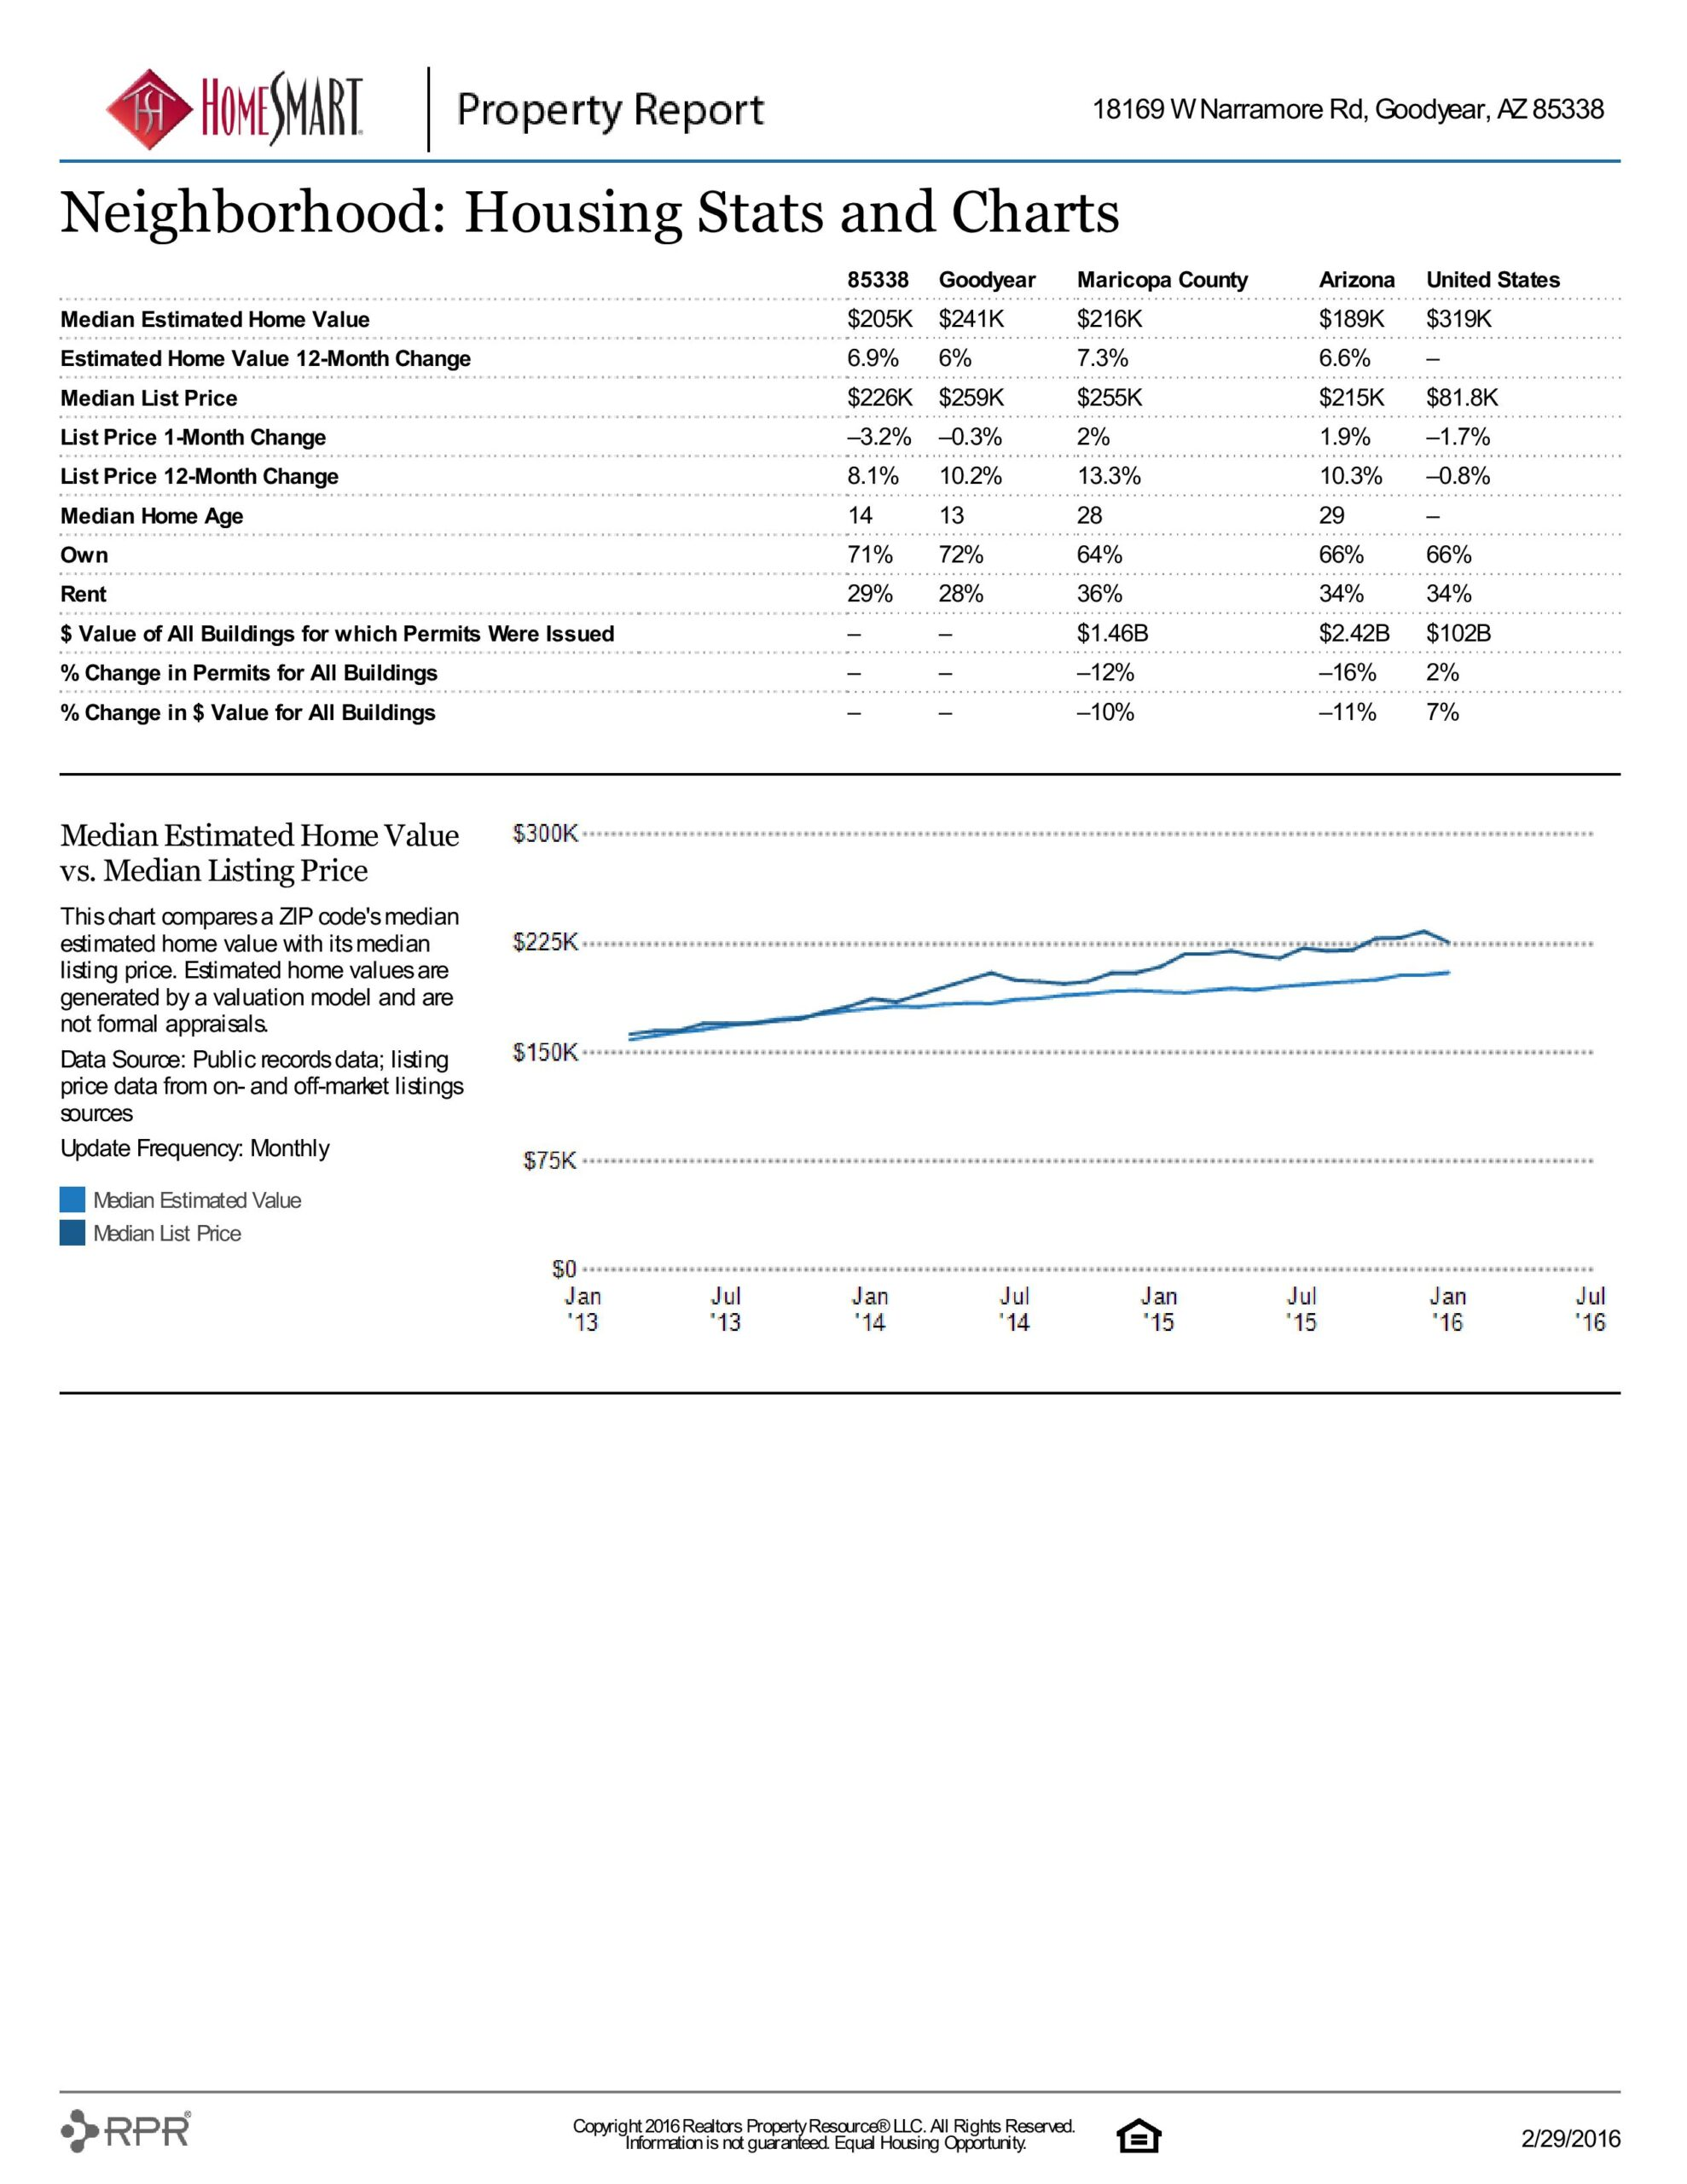 18169 W NARRAMORE RD PROPERTY REPORT-page-016